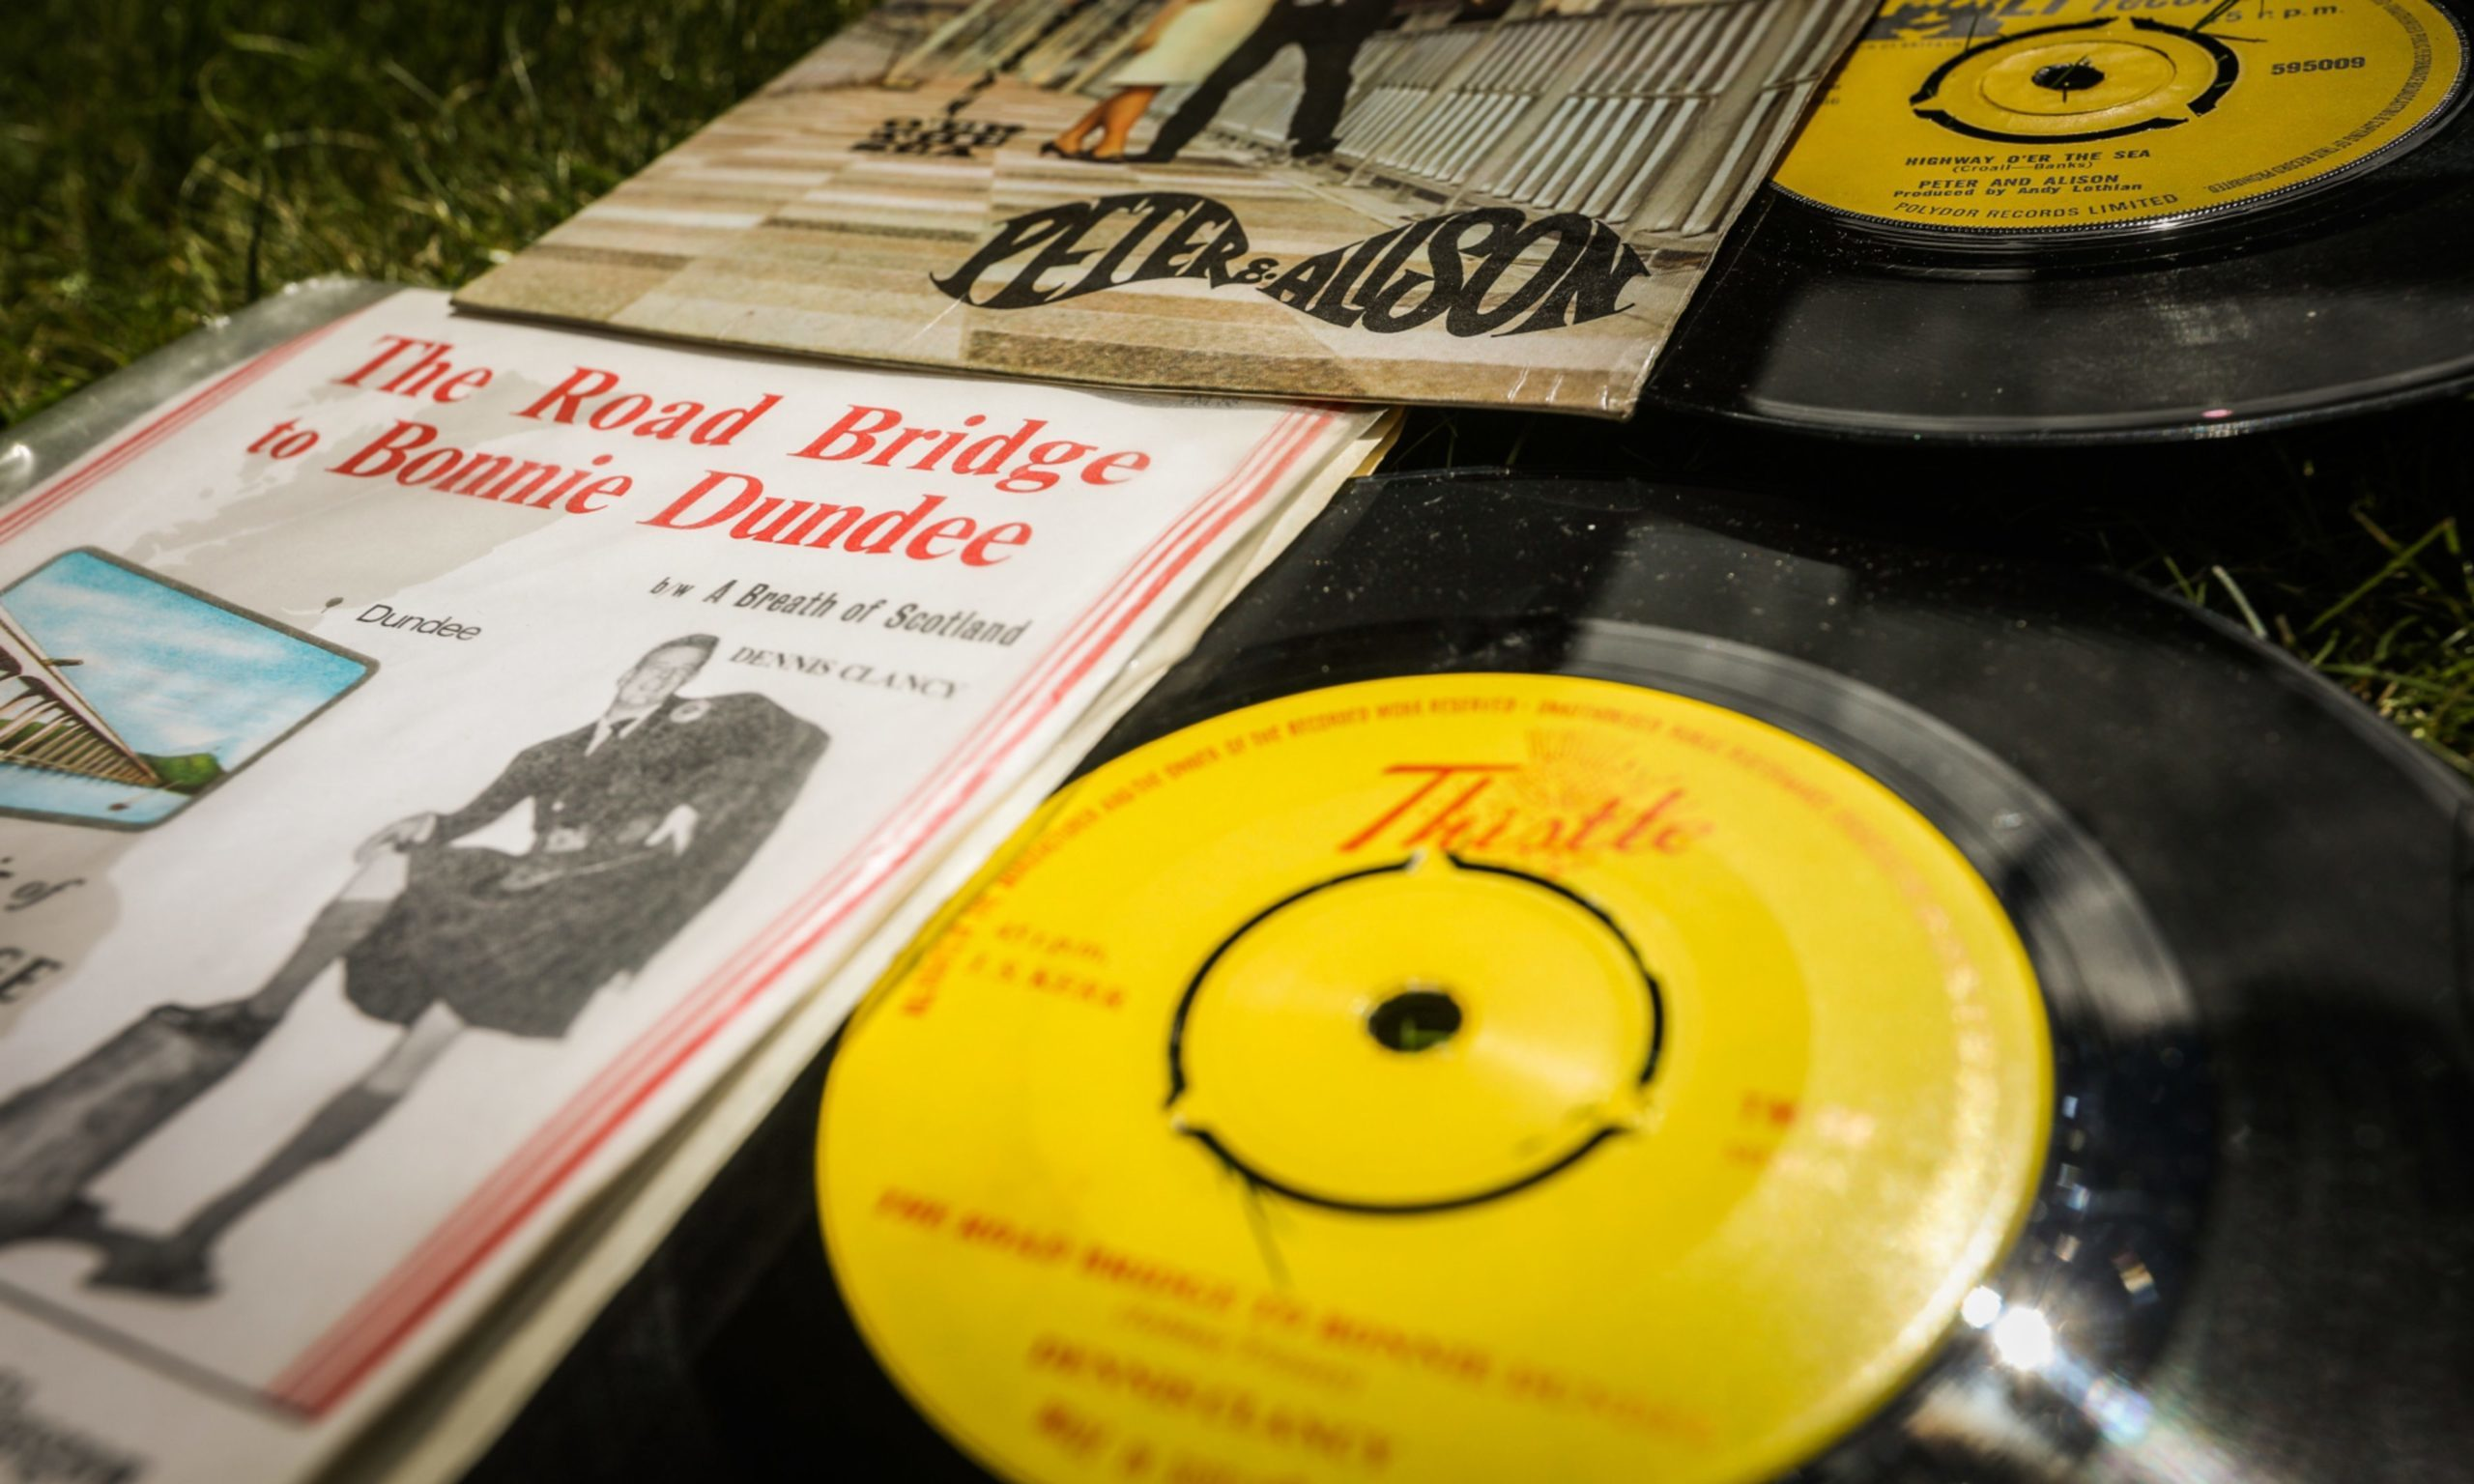 The forgotten records were discovered recently among a stash of Scottish vinyl.